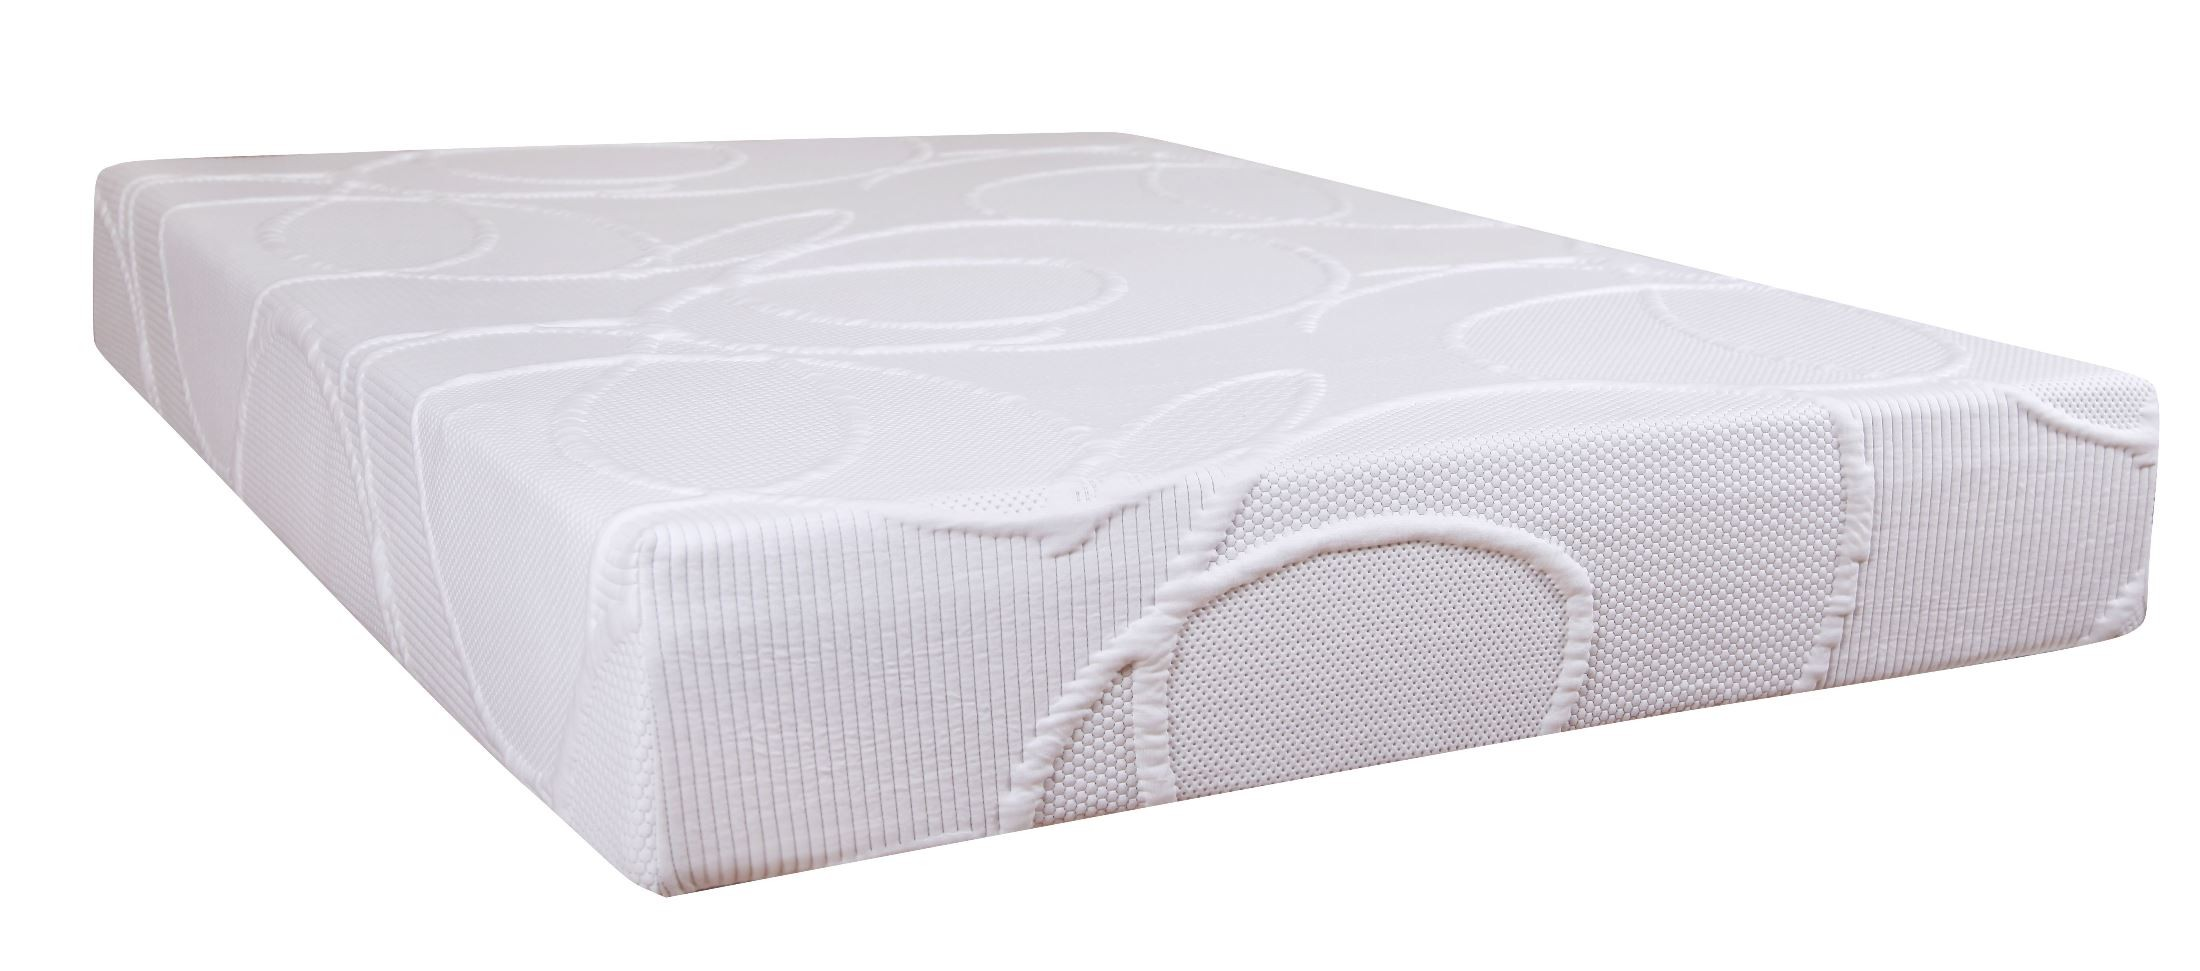 Polaris 10 Memory Foam Queen Size Mattress From Klaussner Polarisqqmat Coleman Furniture